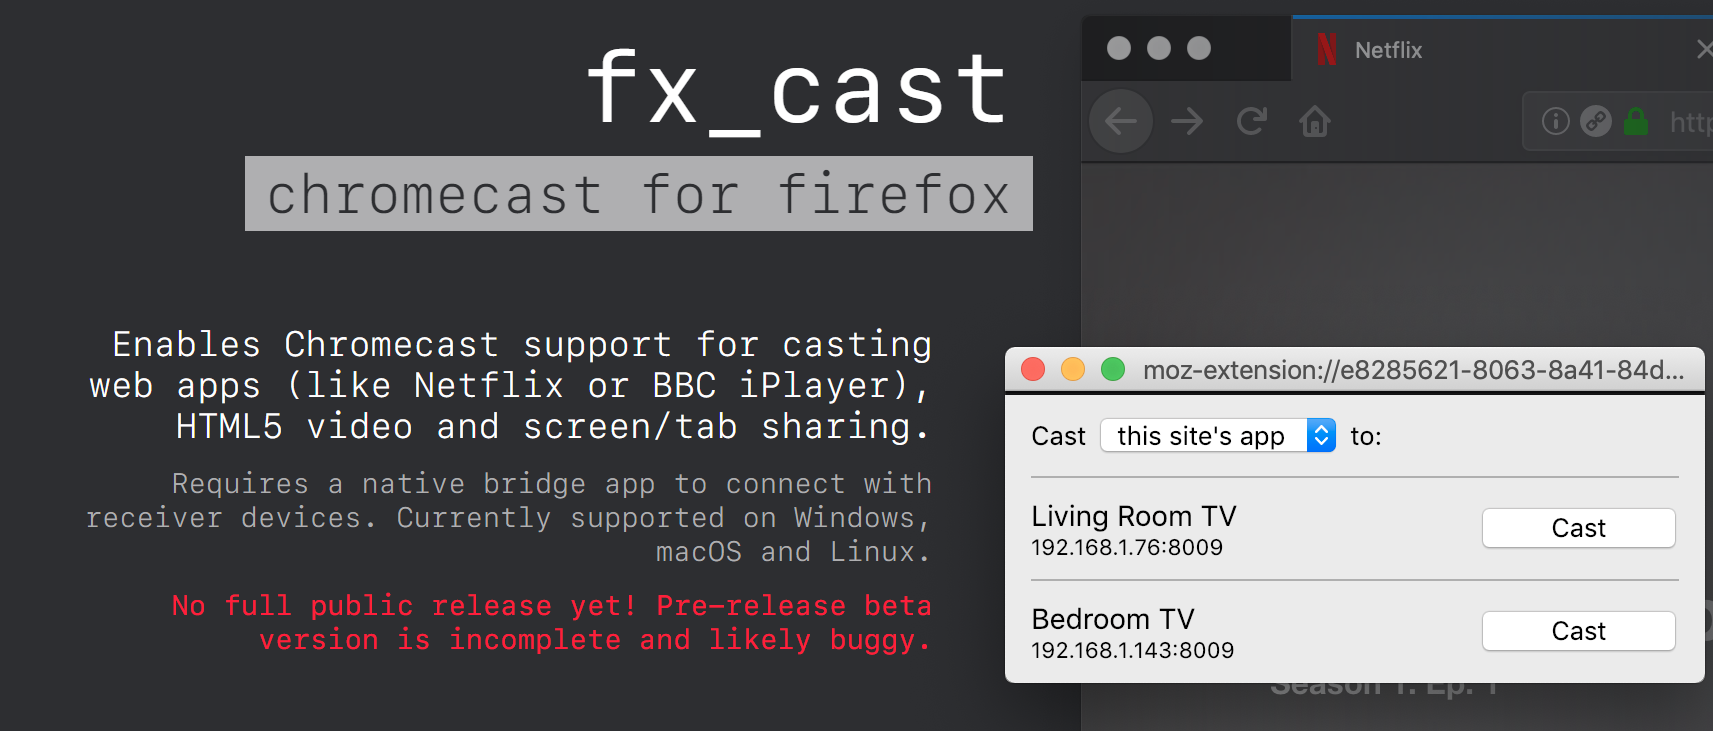 fx_cast extension makes Chromecast work on Firefox